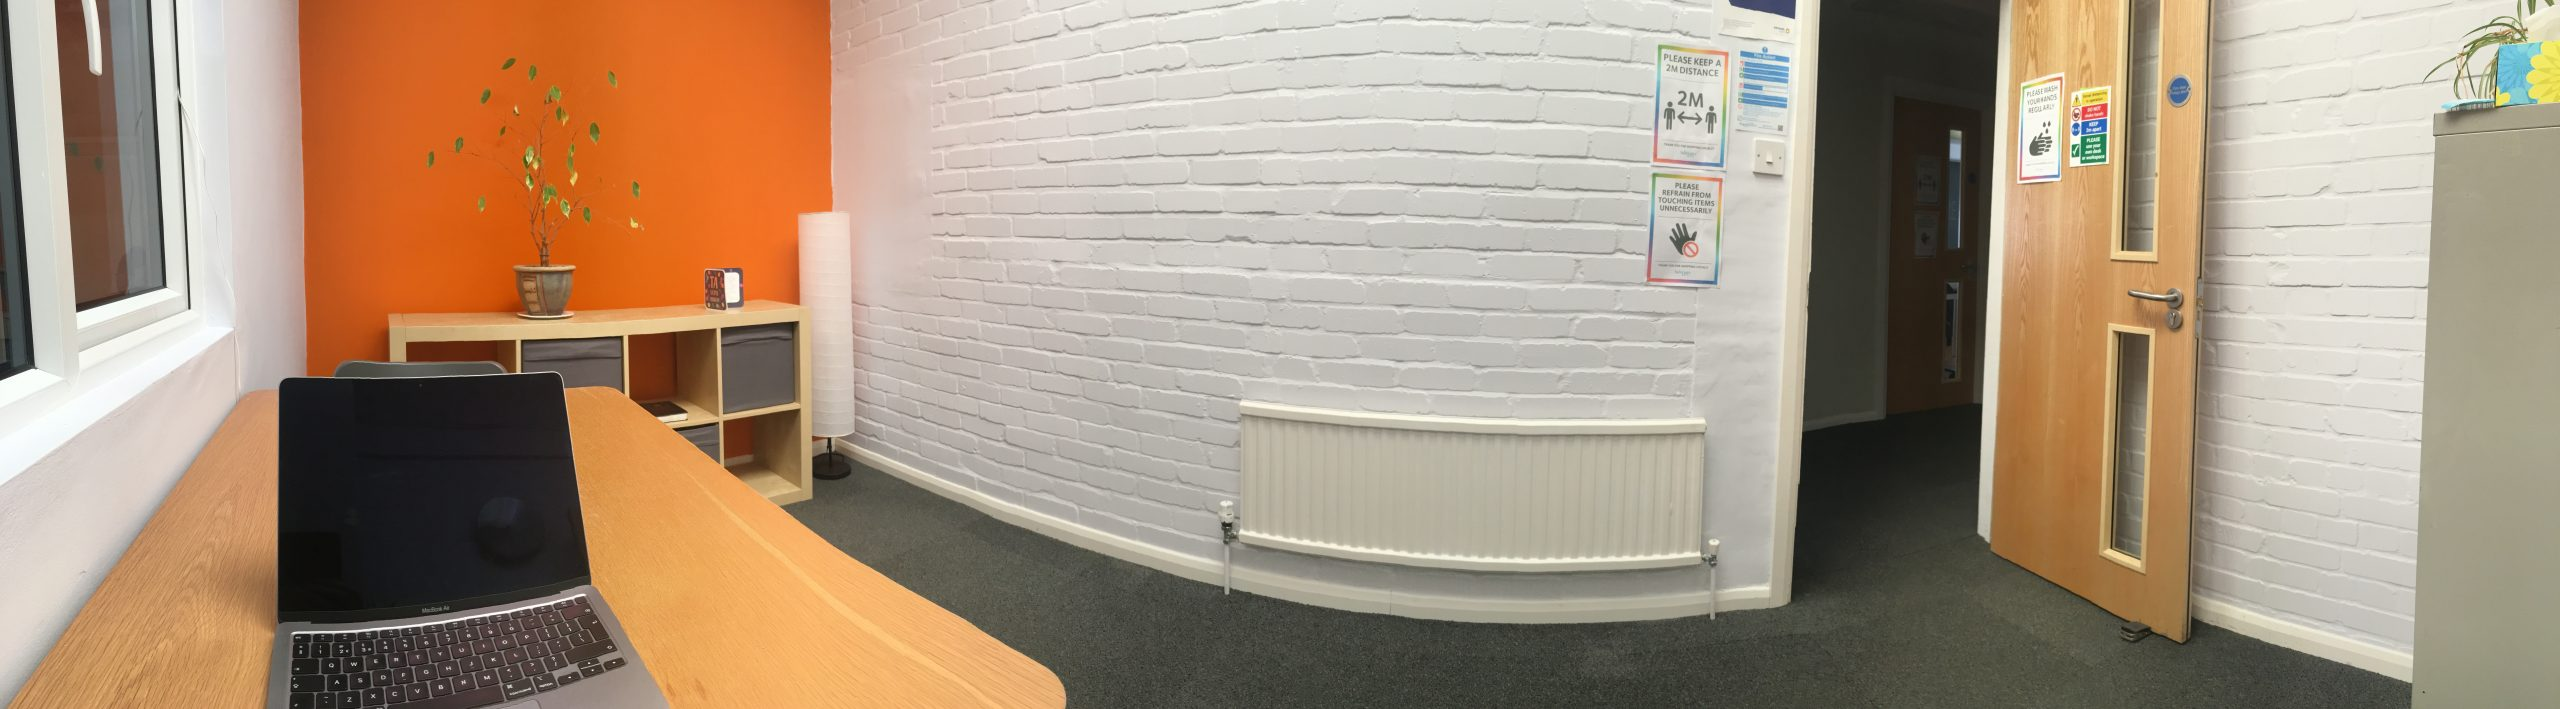 panoramic view of small meeting room with one desk